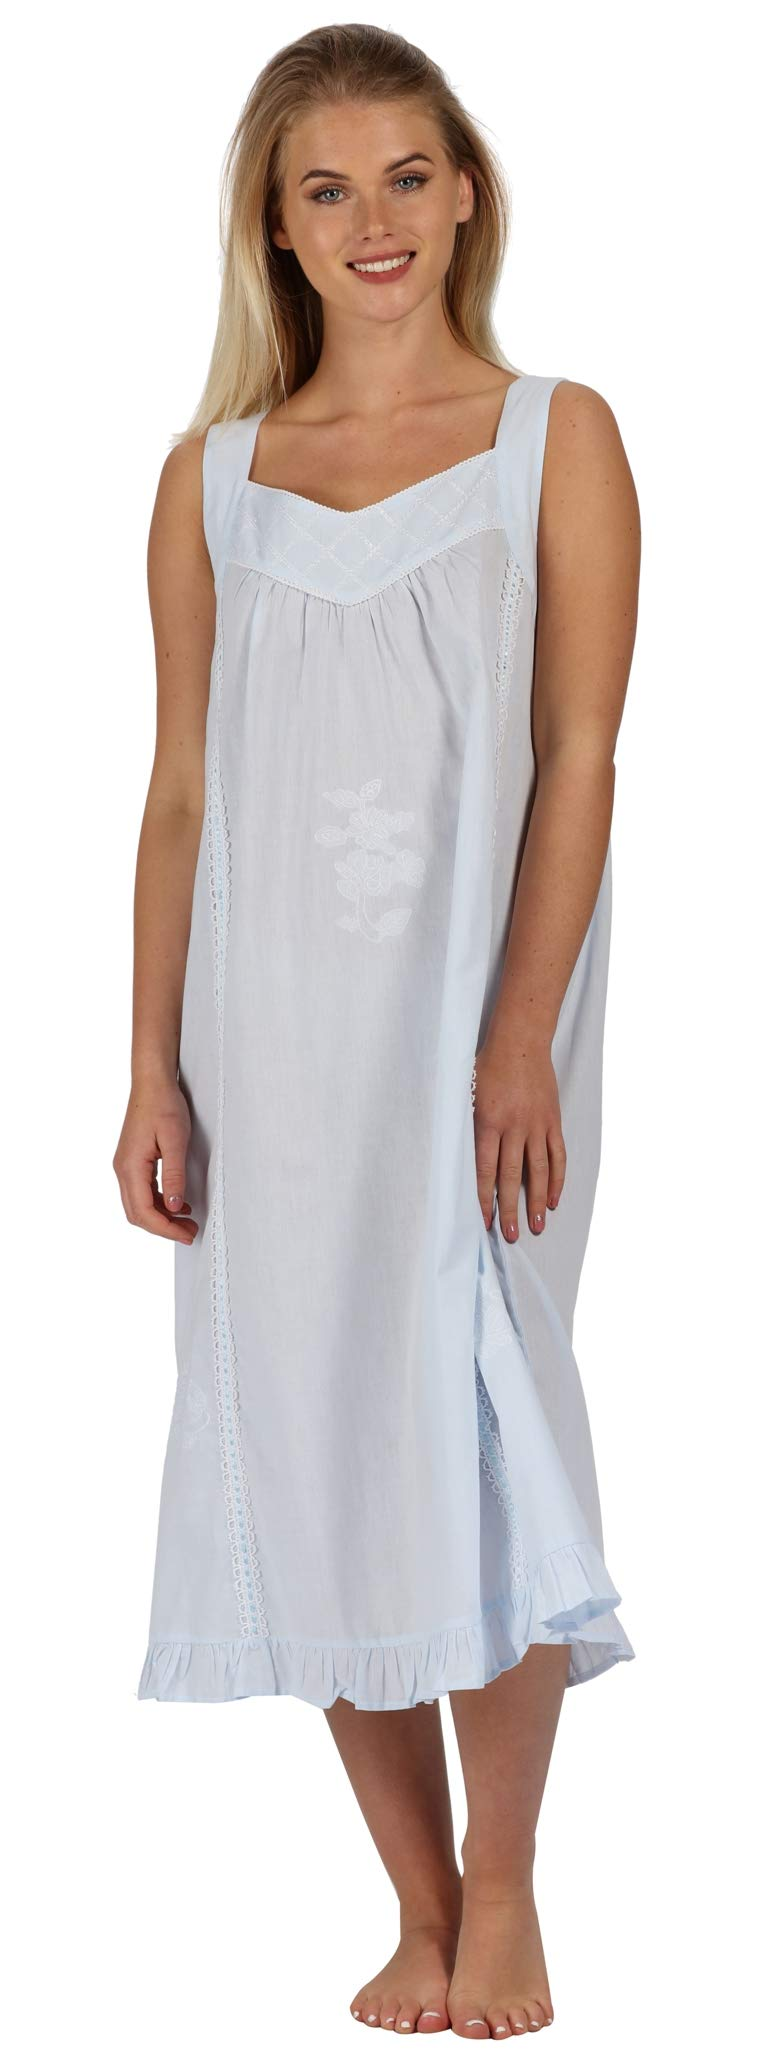 The 1 for U Nancy 100% Cotton Victorian Sleeveless Nightgown 7 Sizes